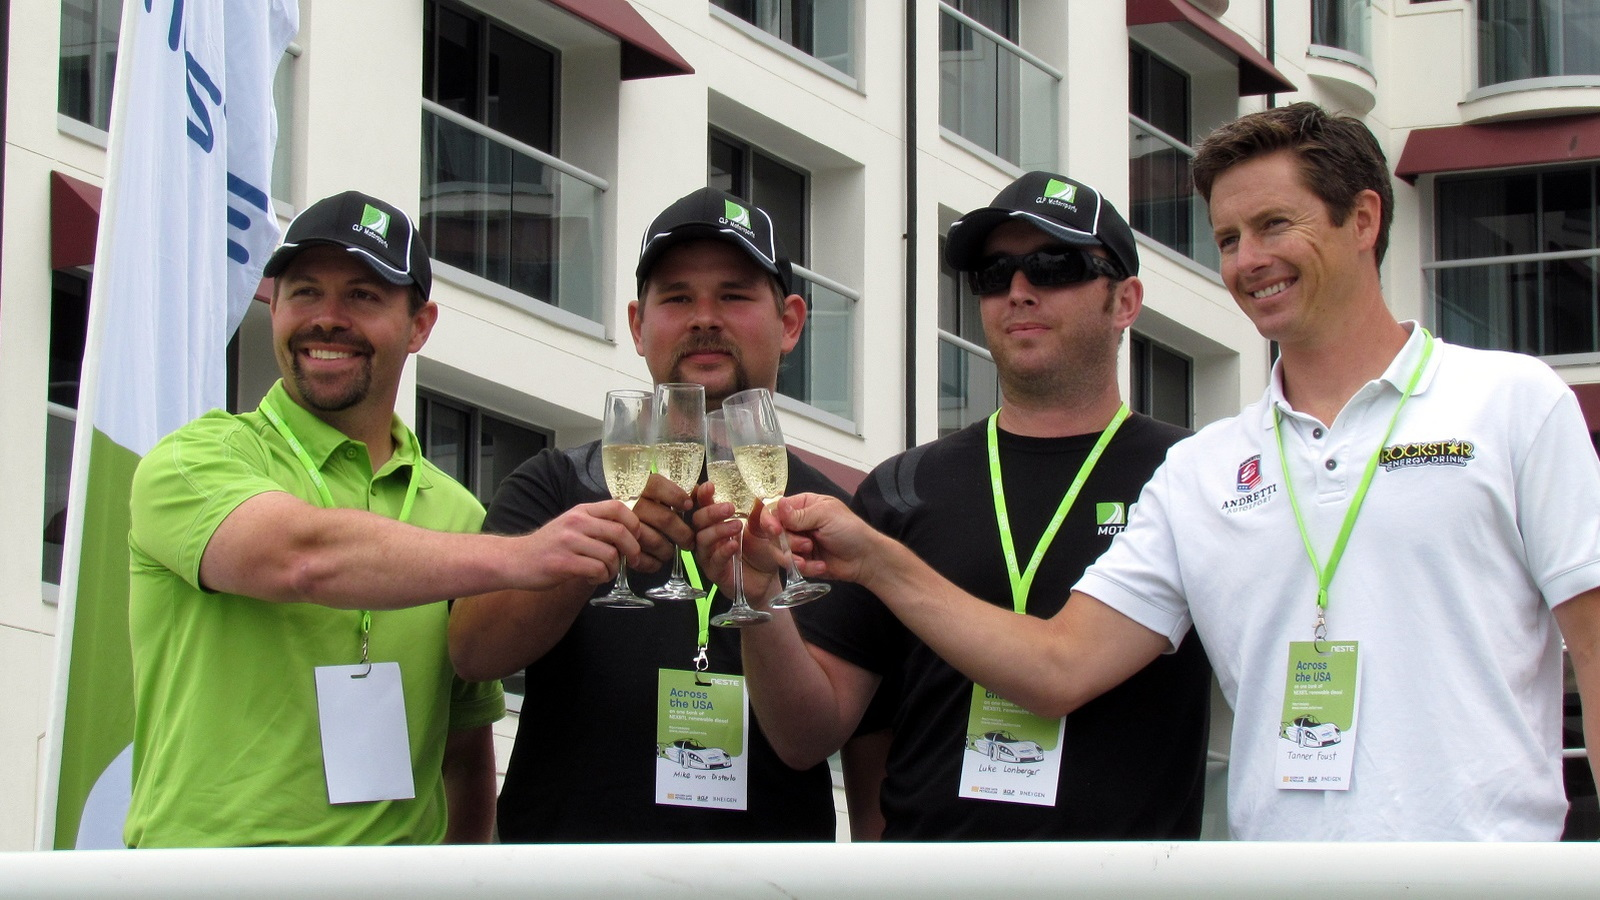 Pat O'Keefe, Michael von Disterlo and Luke Lonberger from CLP Motorsports celebrate w/Tanner Foust